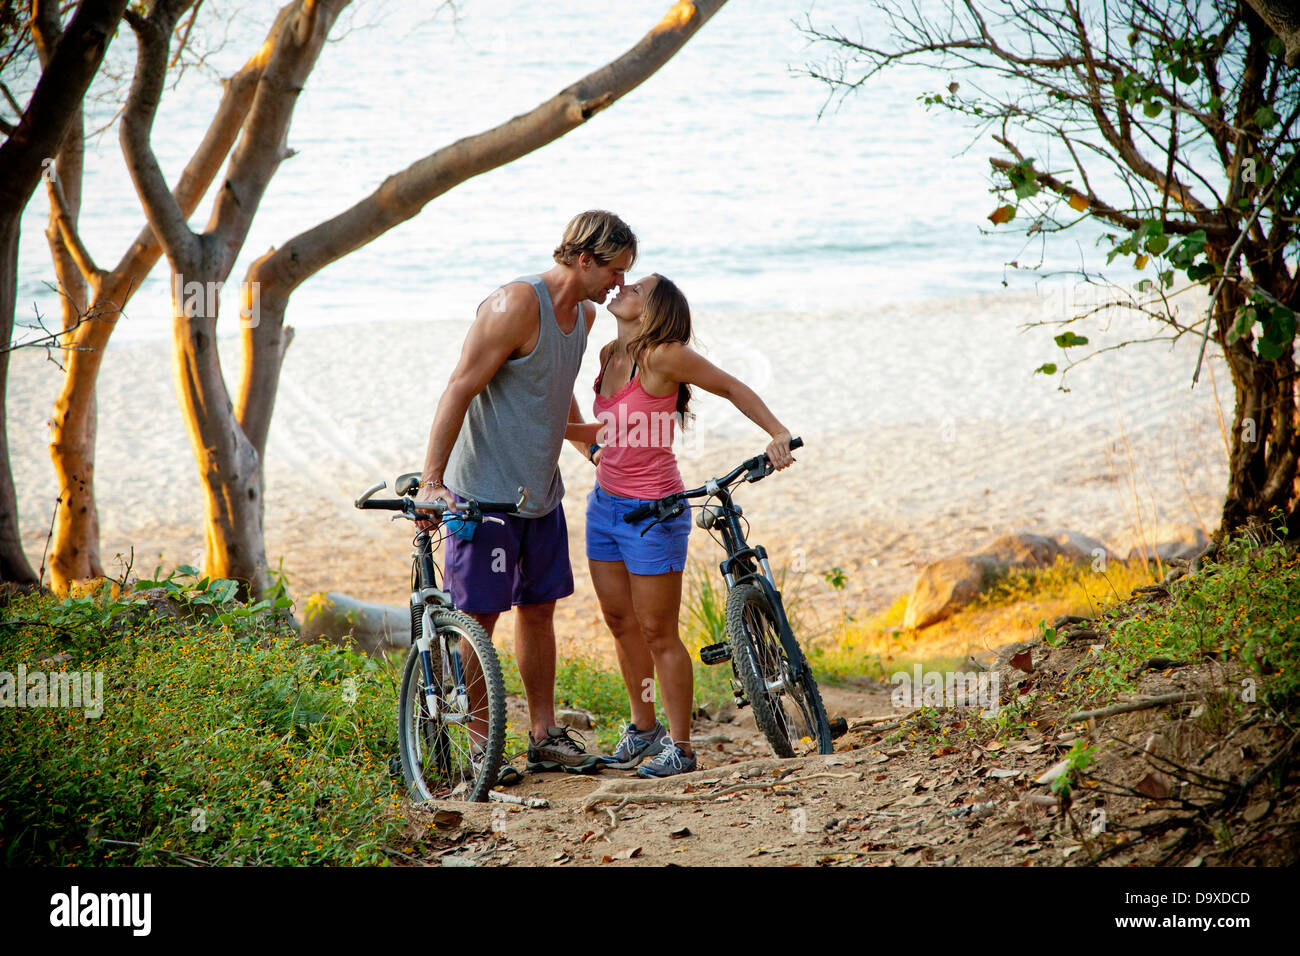 Couple riding bicycles on path to beach Stock Photo